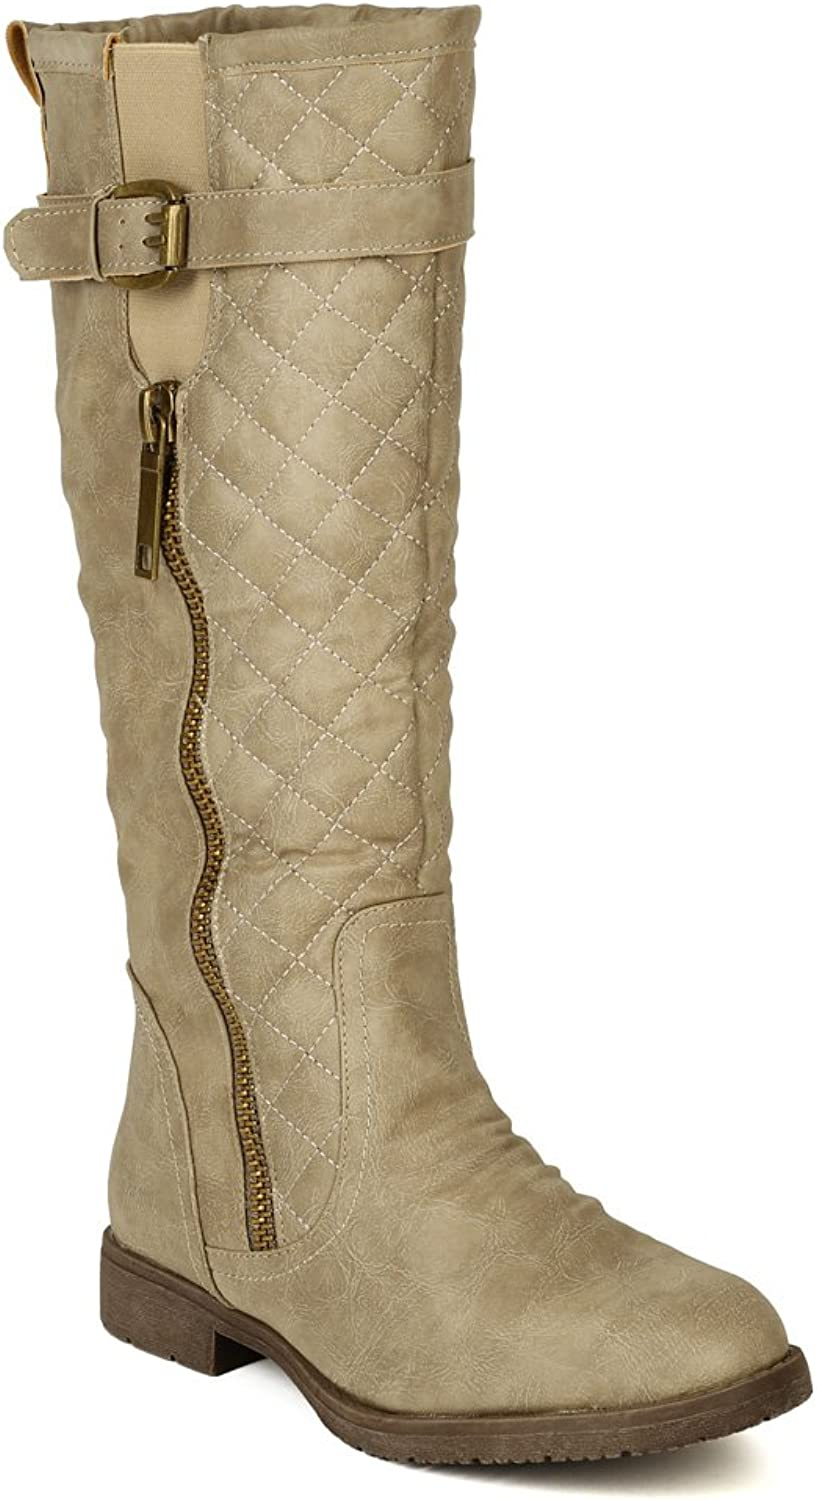 Nature Breeze Women Leatherette Quilted Strap Calf High Riding Boot BD74 - Sand